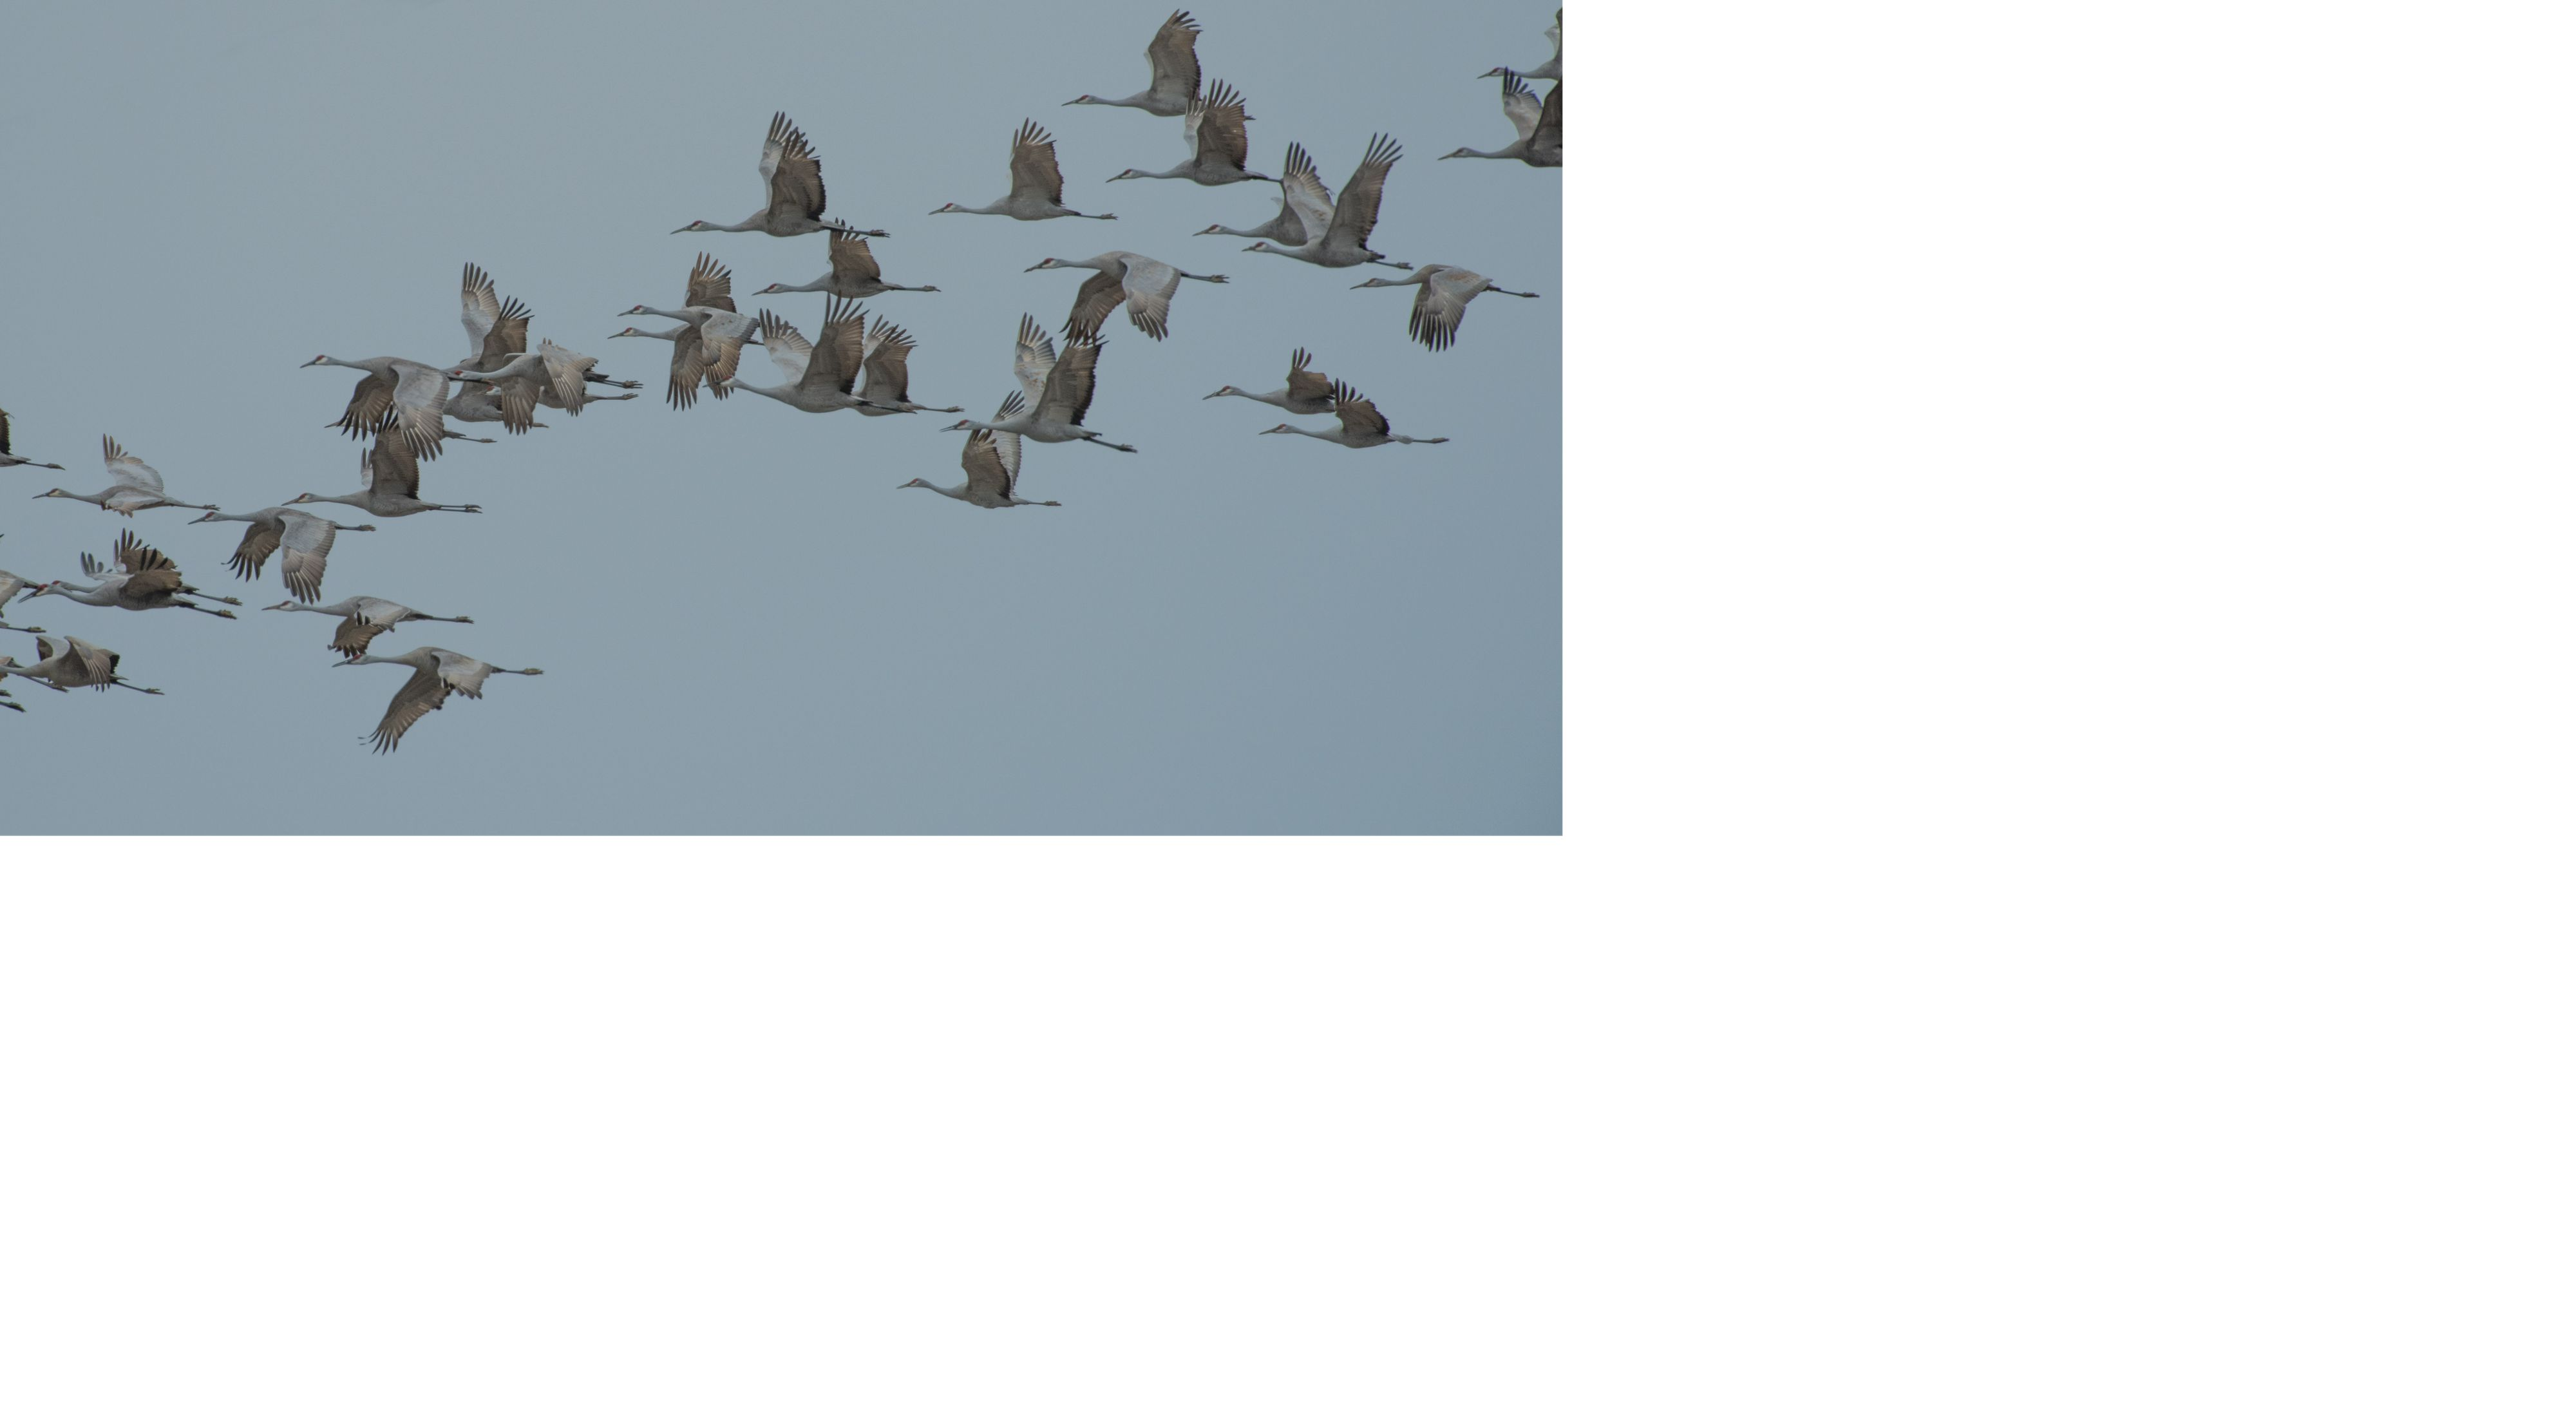 flock of sandhill cranes in flight in a blue sky